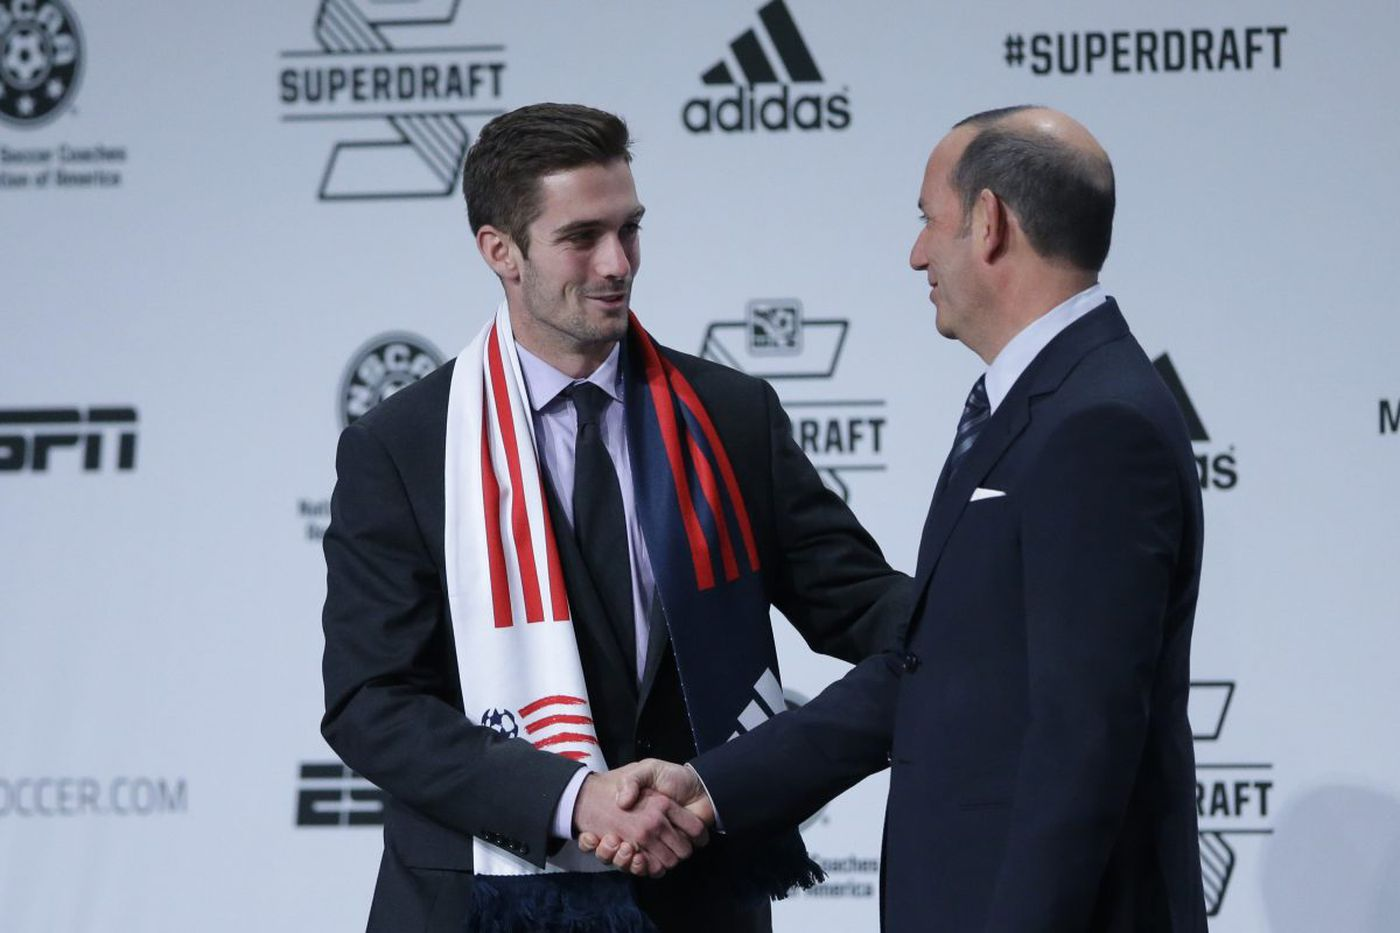 They were top MLS draft picks. But when their soccer dreams changed, they walked away.